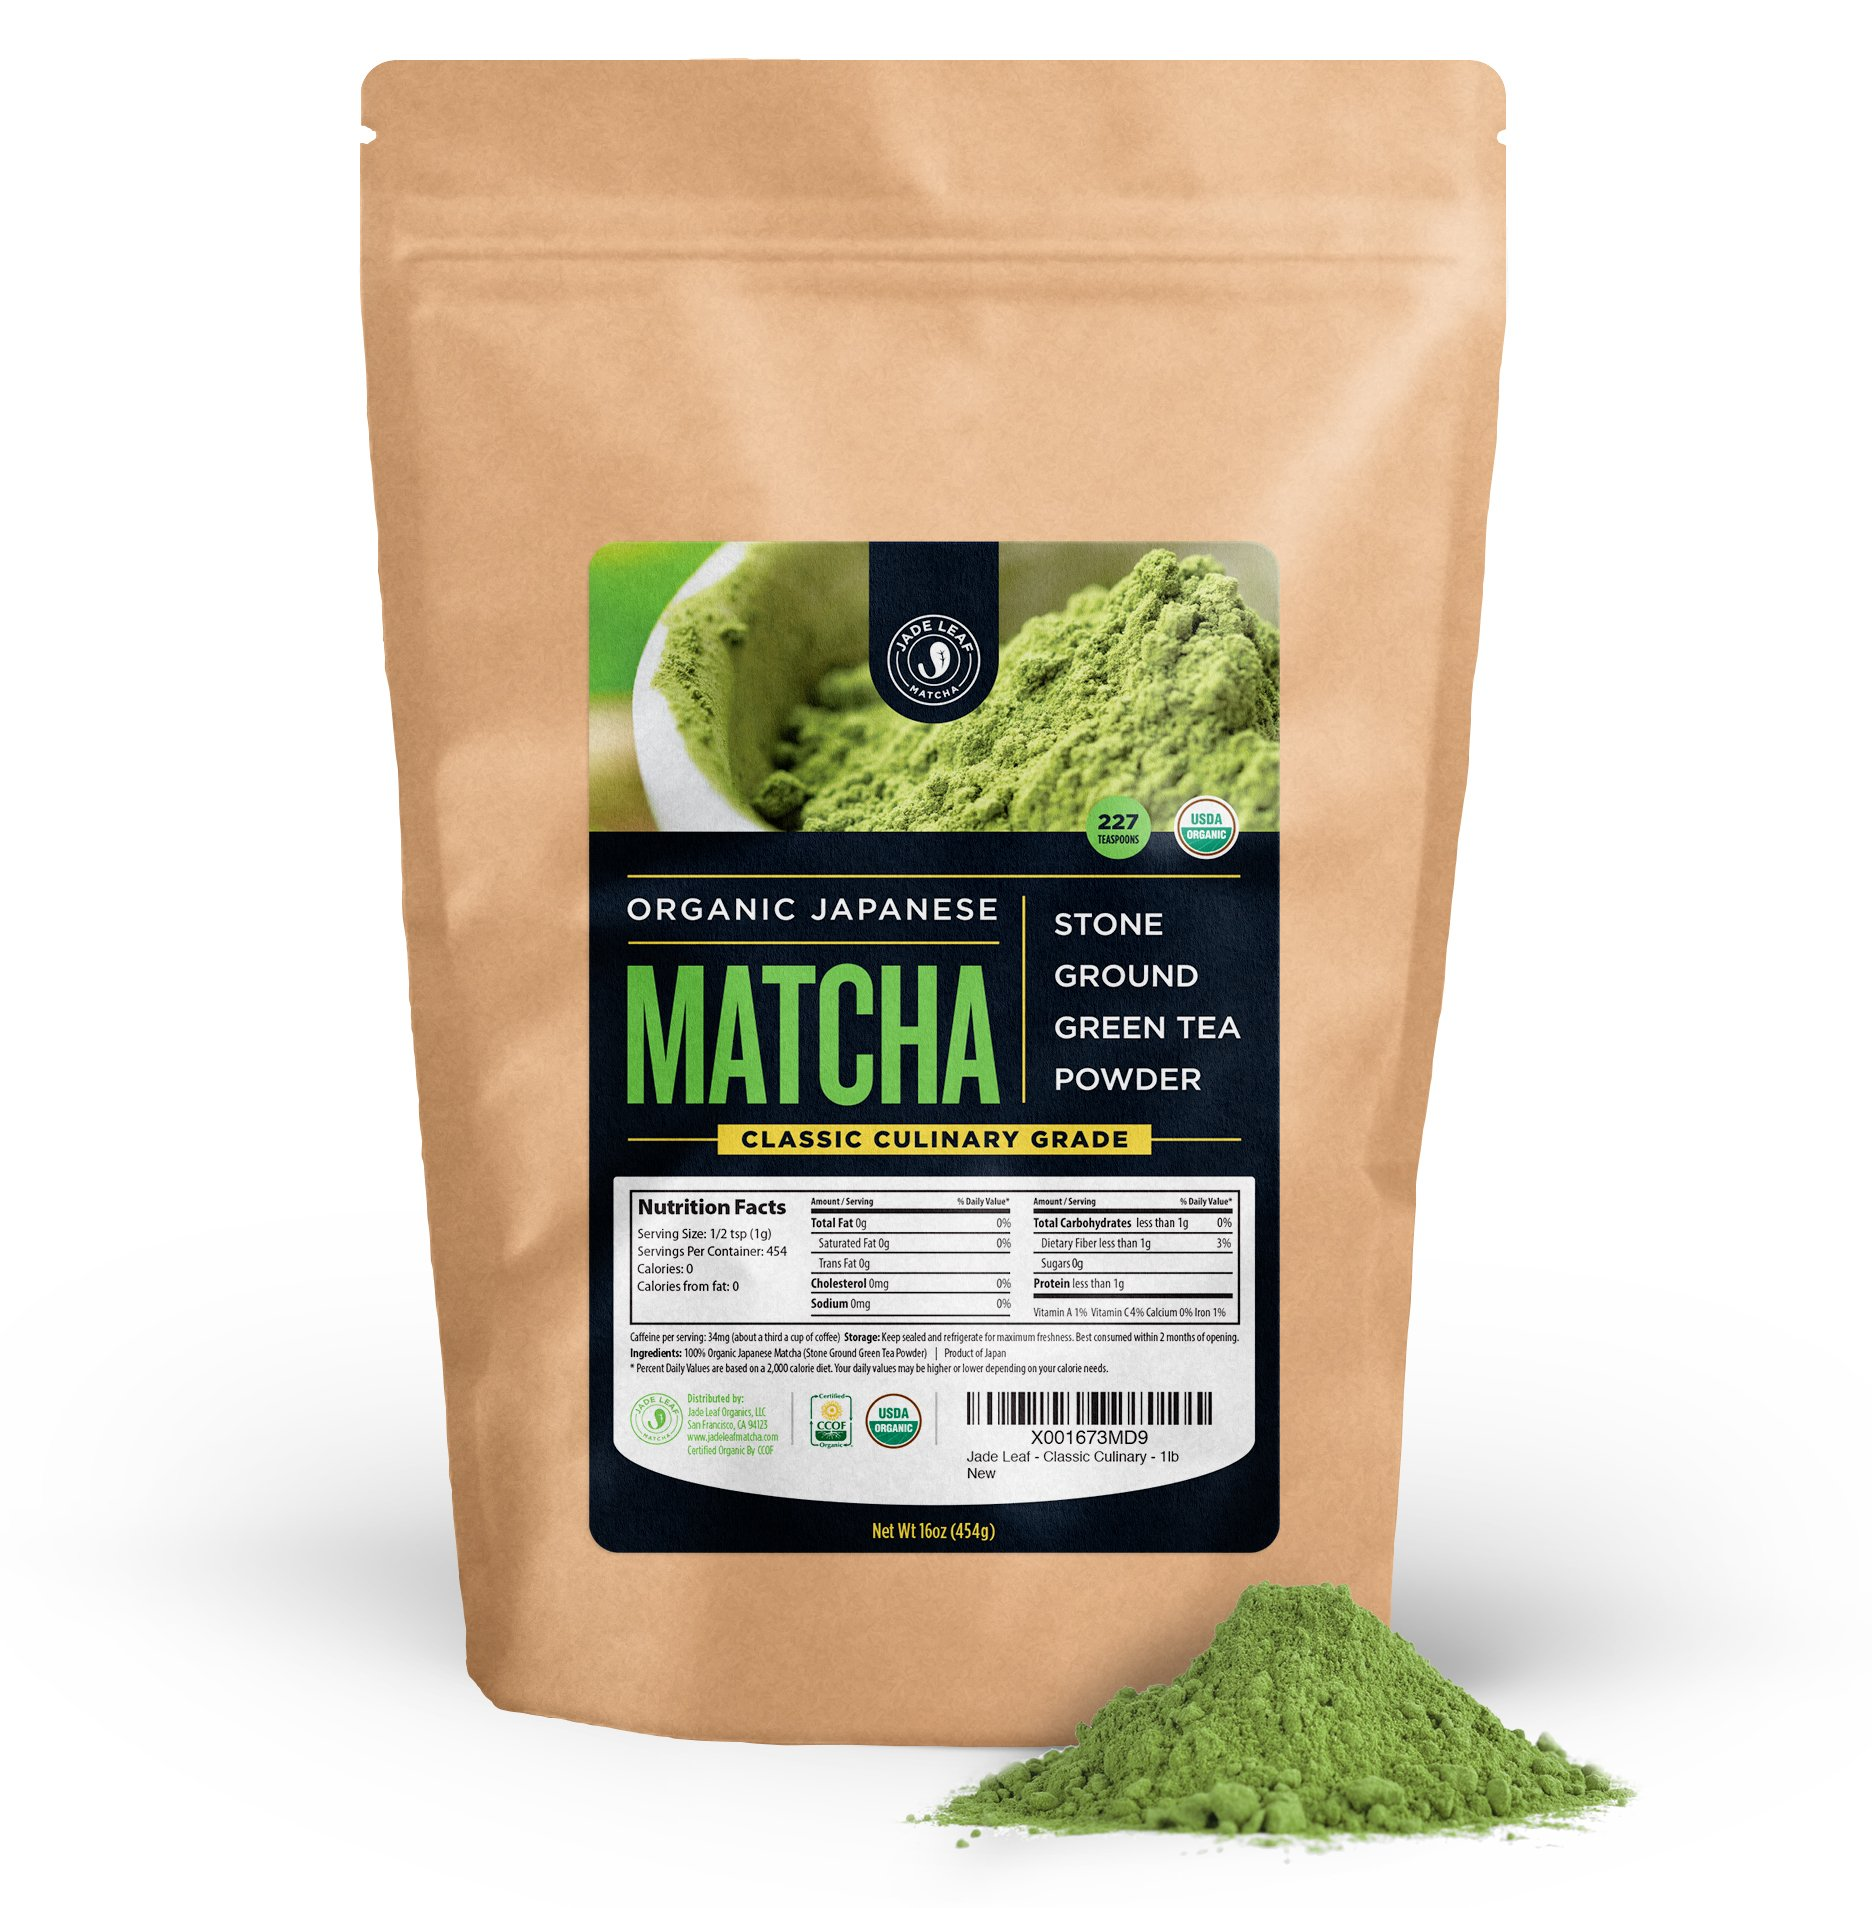 Jade Leaf Matcha Green Tea Powder - USDA Organic, Authentic Japanese Origin - Classic Culinary Grade (Smoothies, Lattes, Baking, Recipes) - Antioxidants, Energy [1lb Bulk Size] by Jade Leaf Matcha